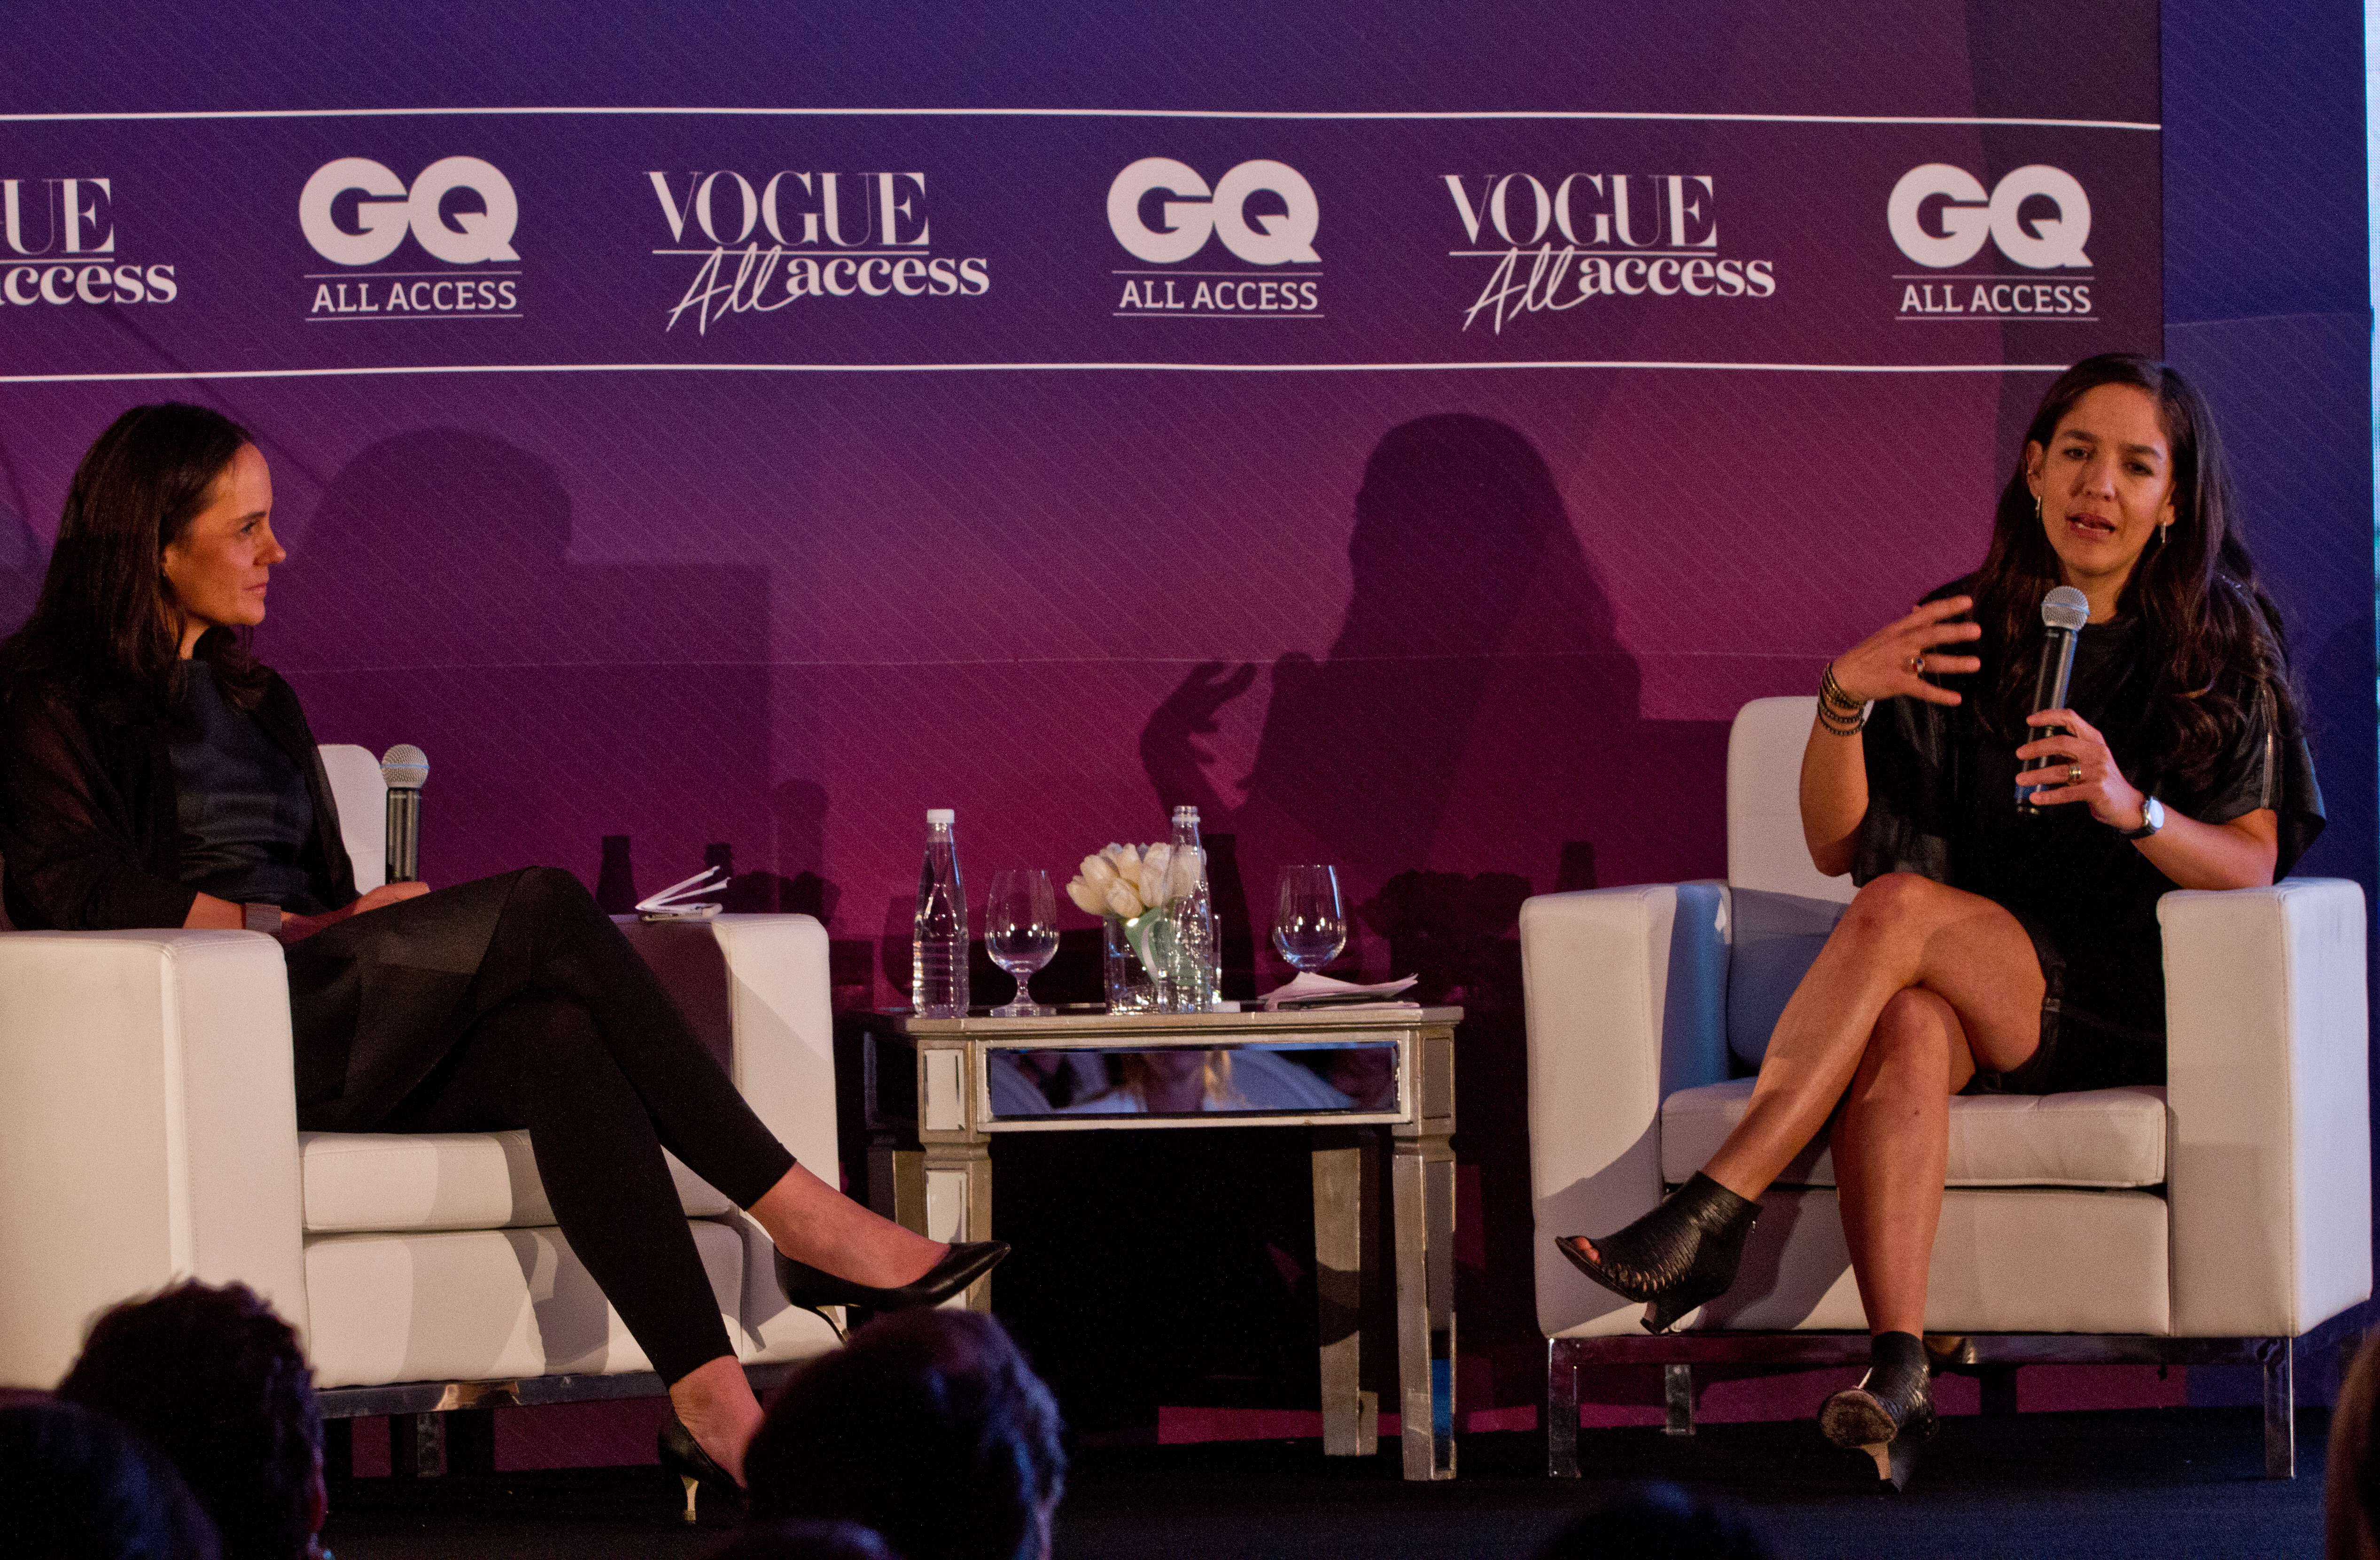 Vogue All Access Conference